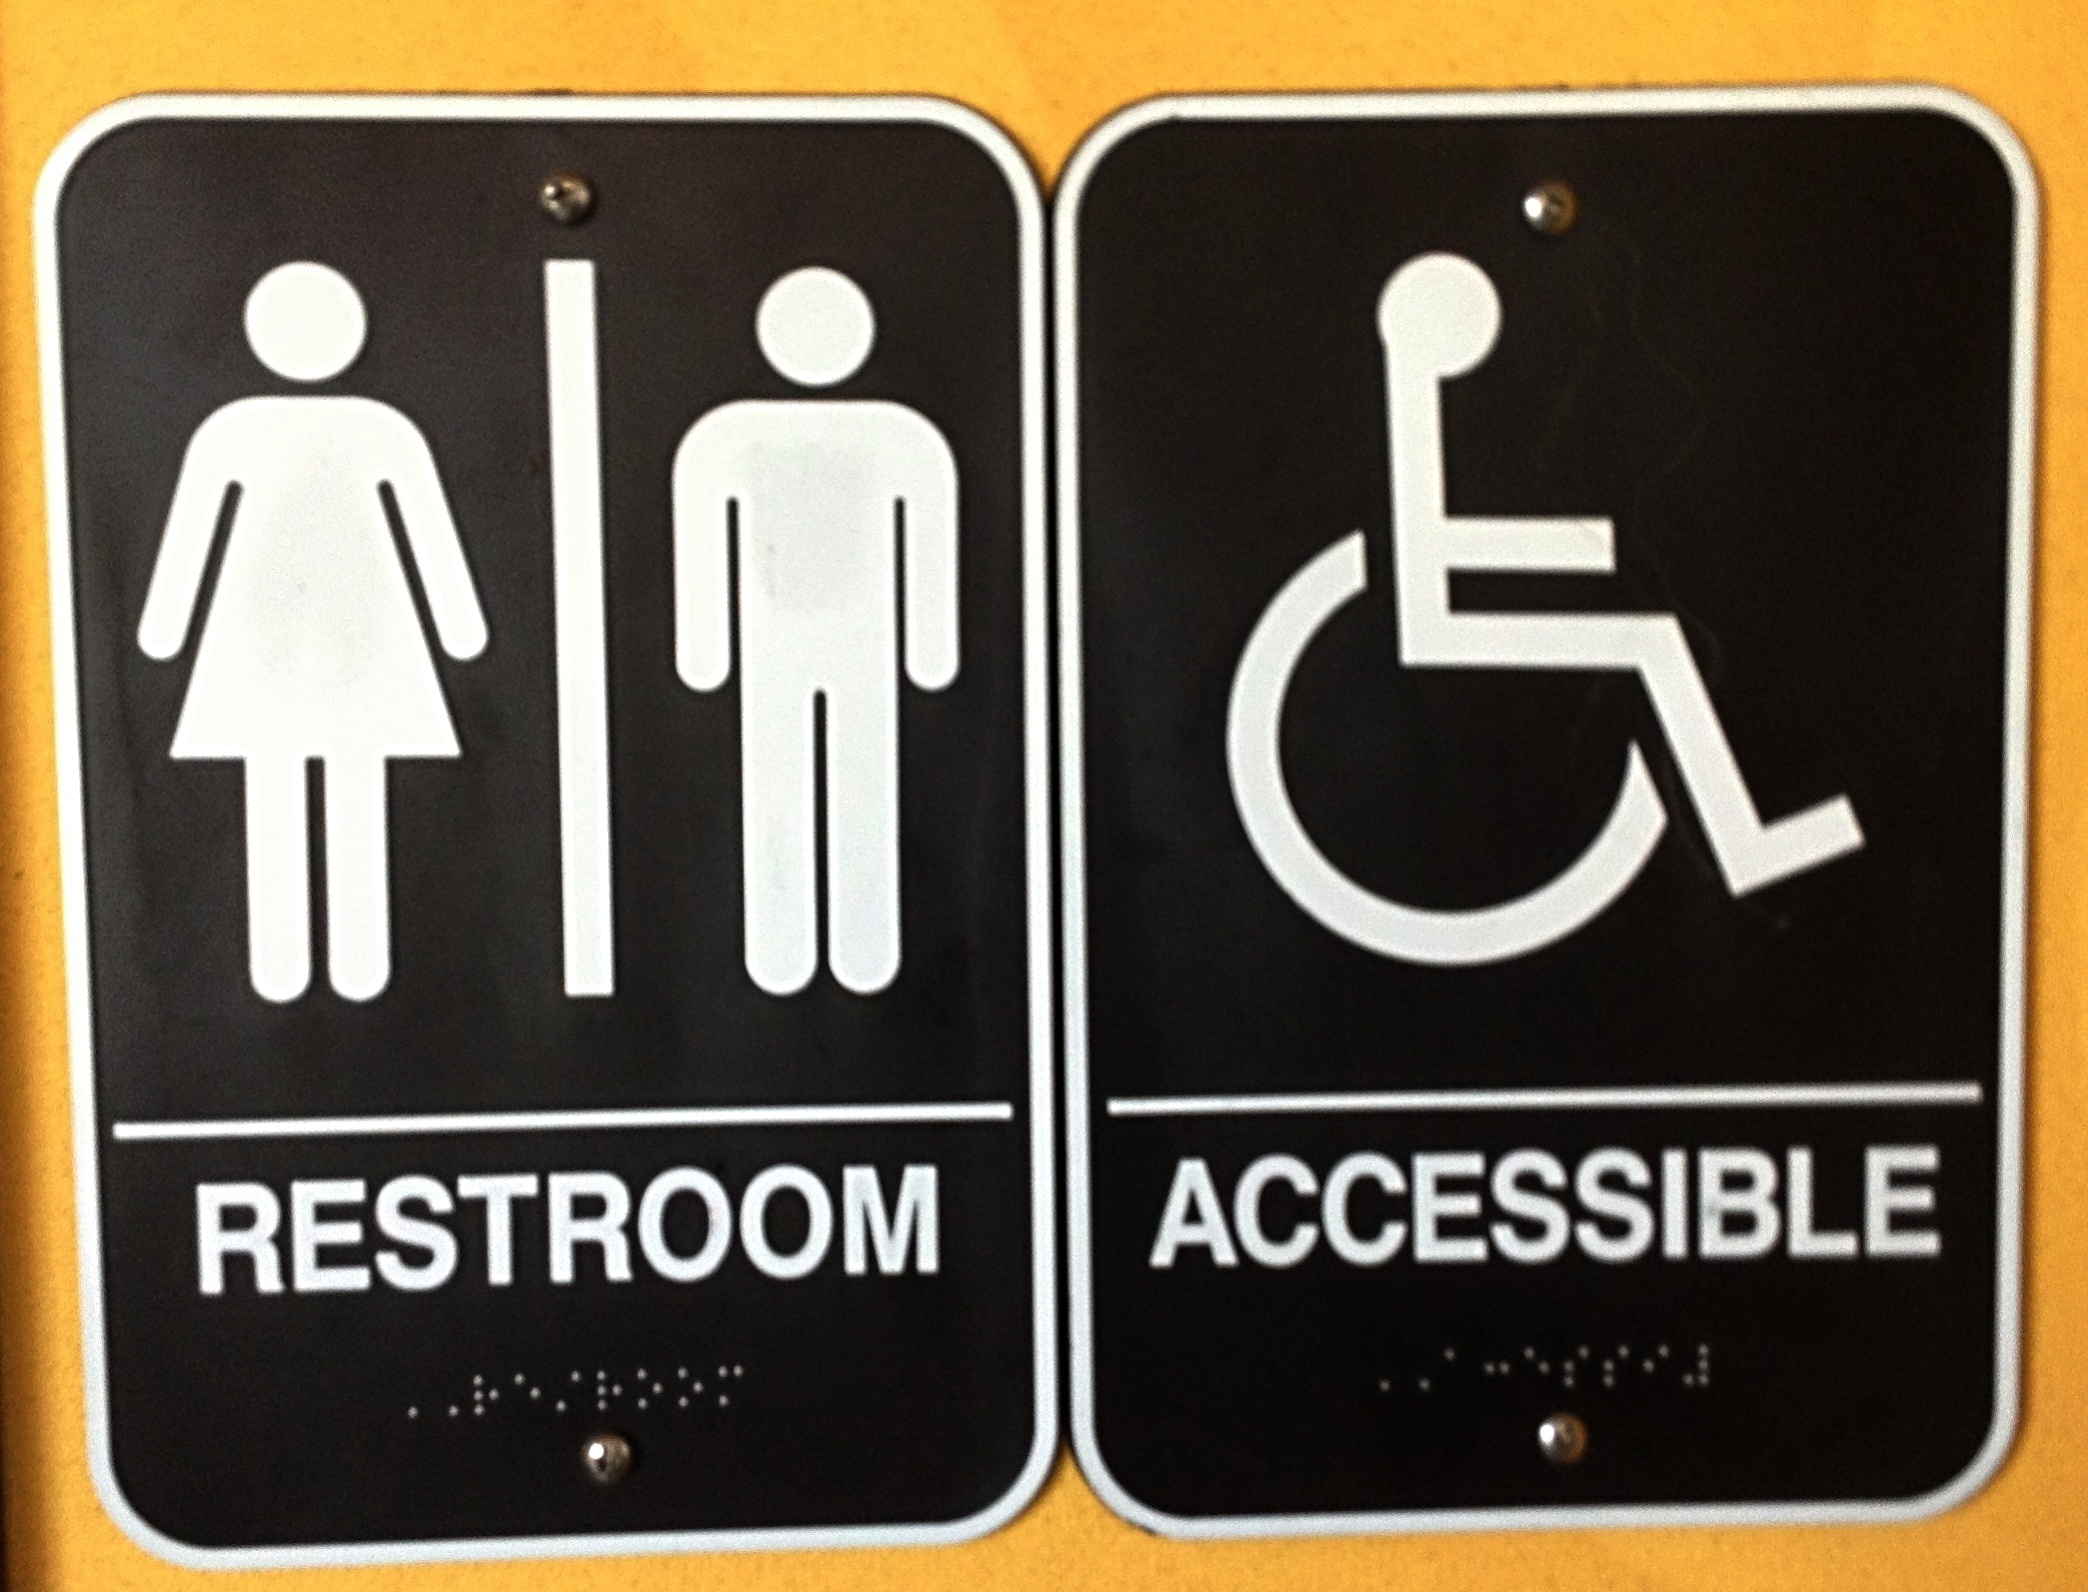 Commonly Overlooked Ada Bathroom Requirements